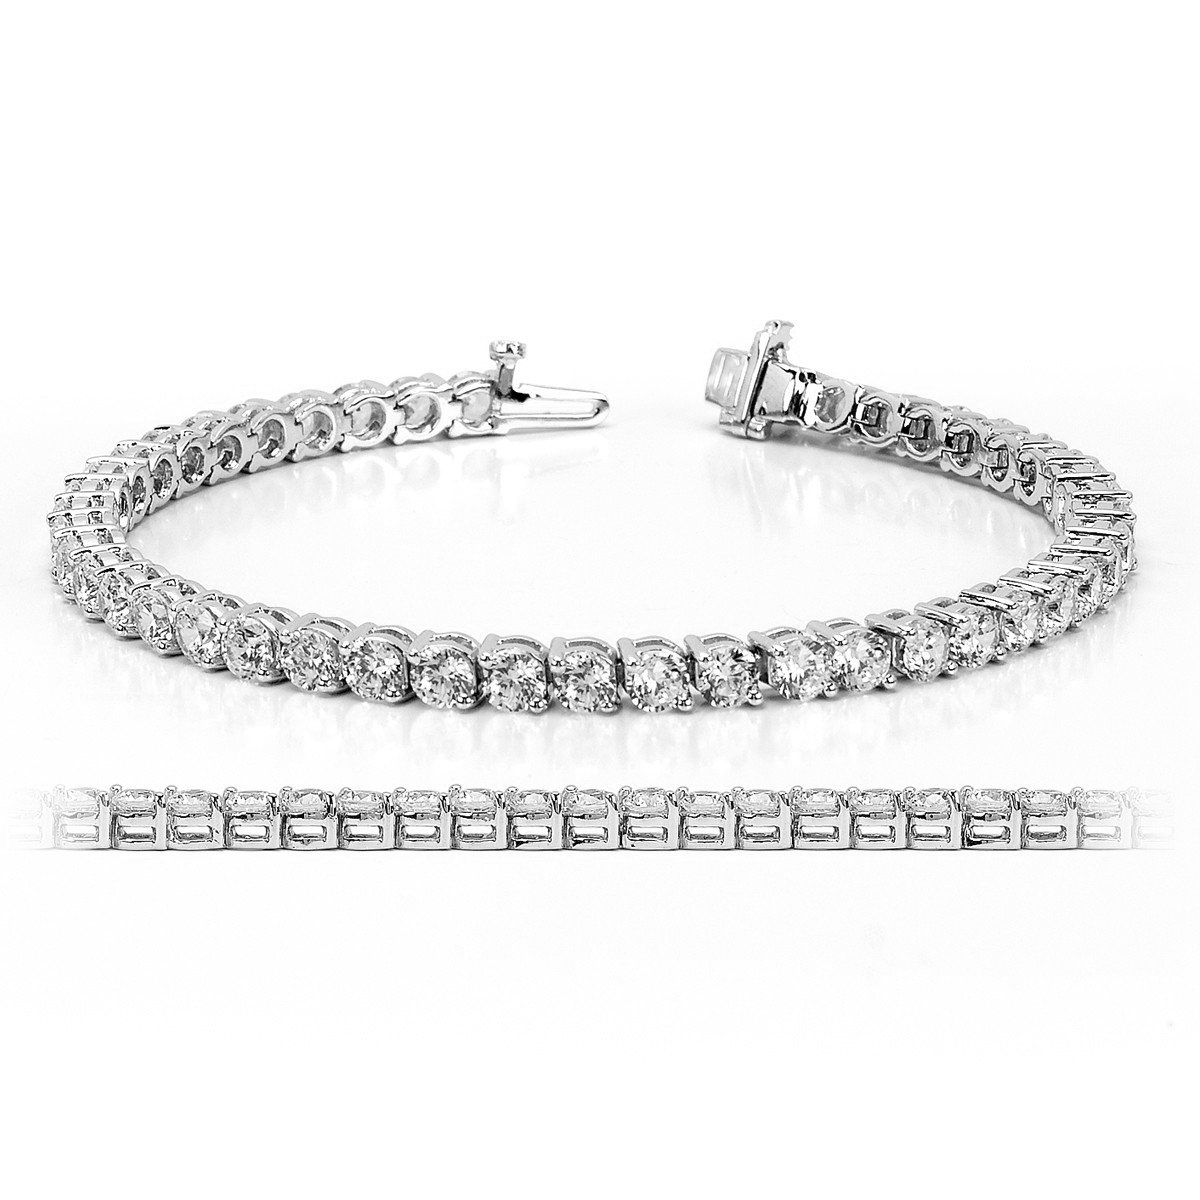 Women 4MM Round Cubic Zirconia Tennis Bracelet In Rhodium & Gold Plated, 7.5 Inches NYC Sterling TEN-4MM-BR